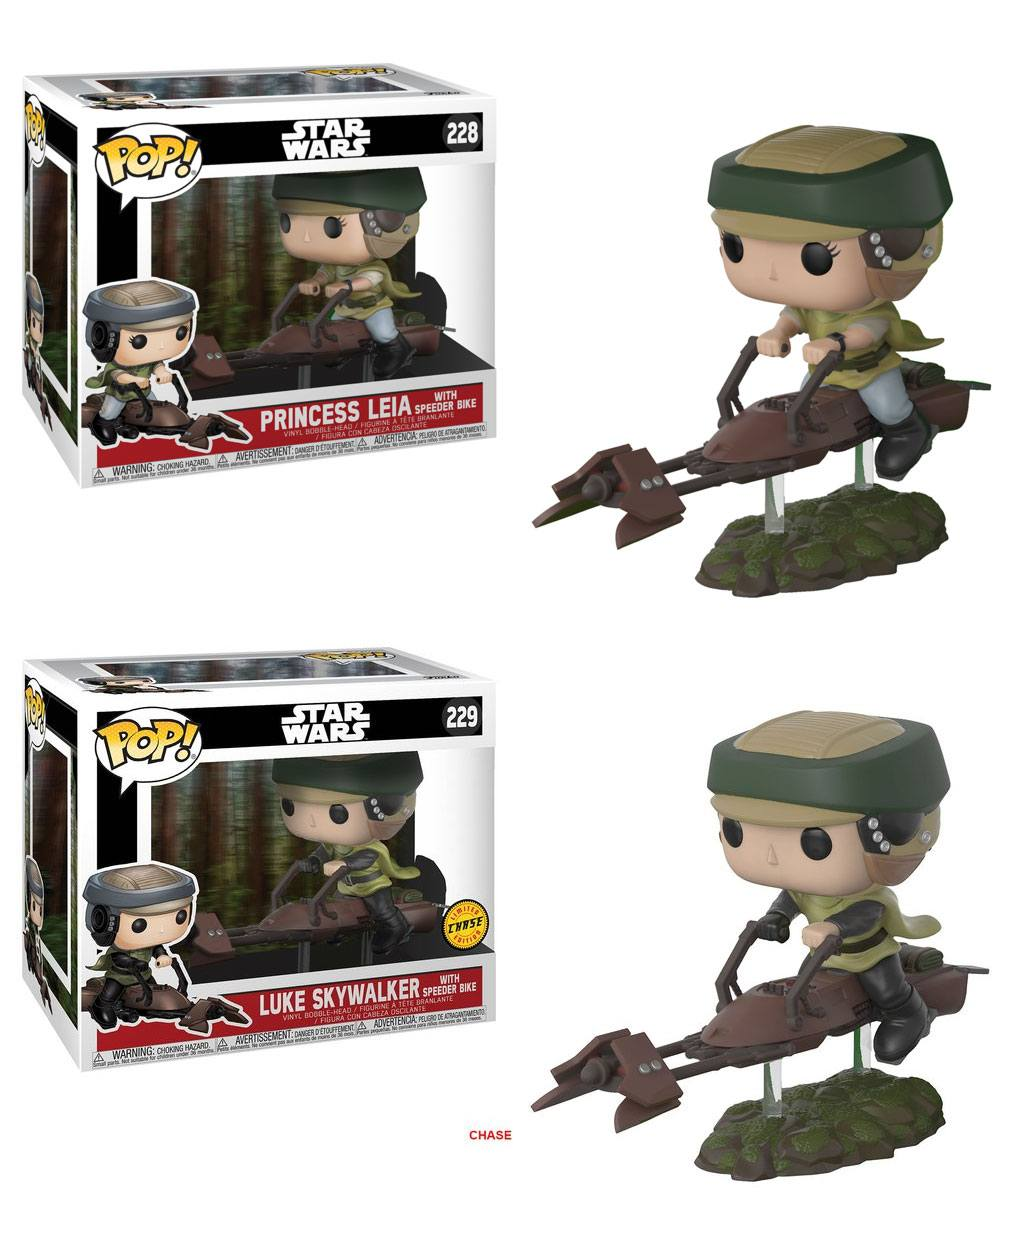 Star Wars POP! Movies Figures Leia / Luke with Speeder Bike 10 cm Assortment (3)